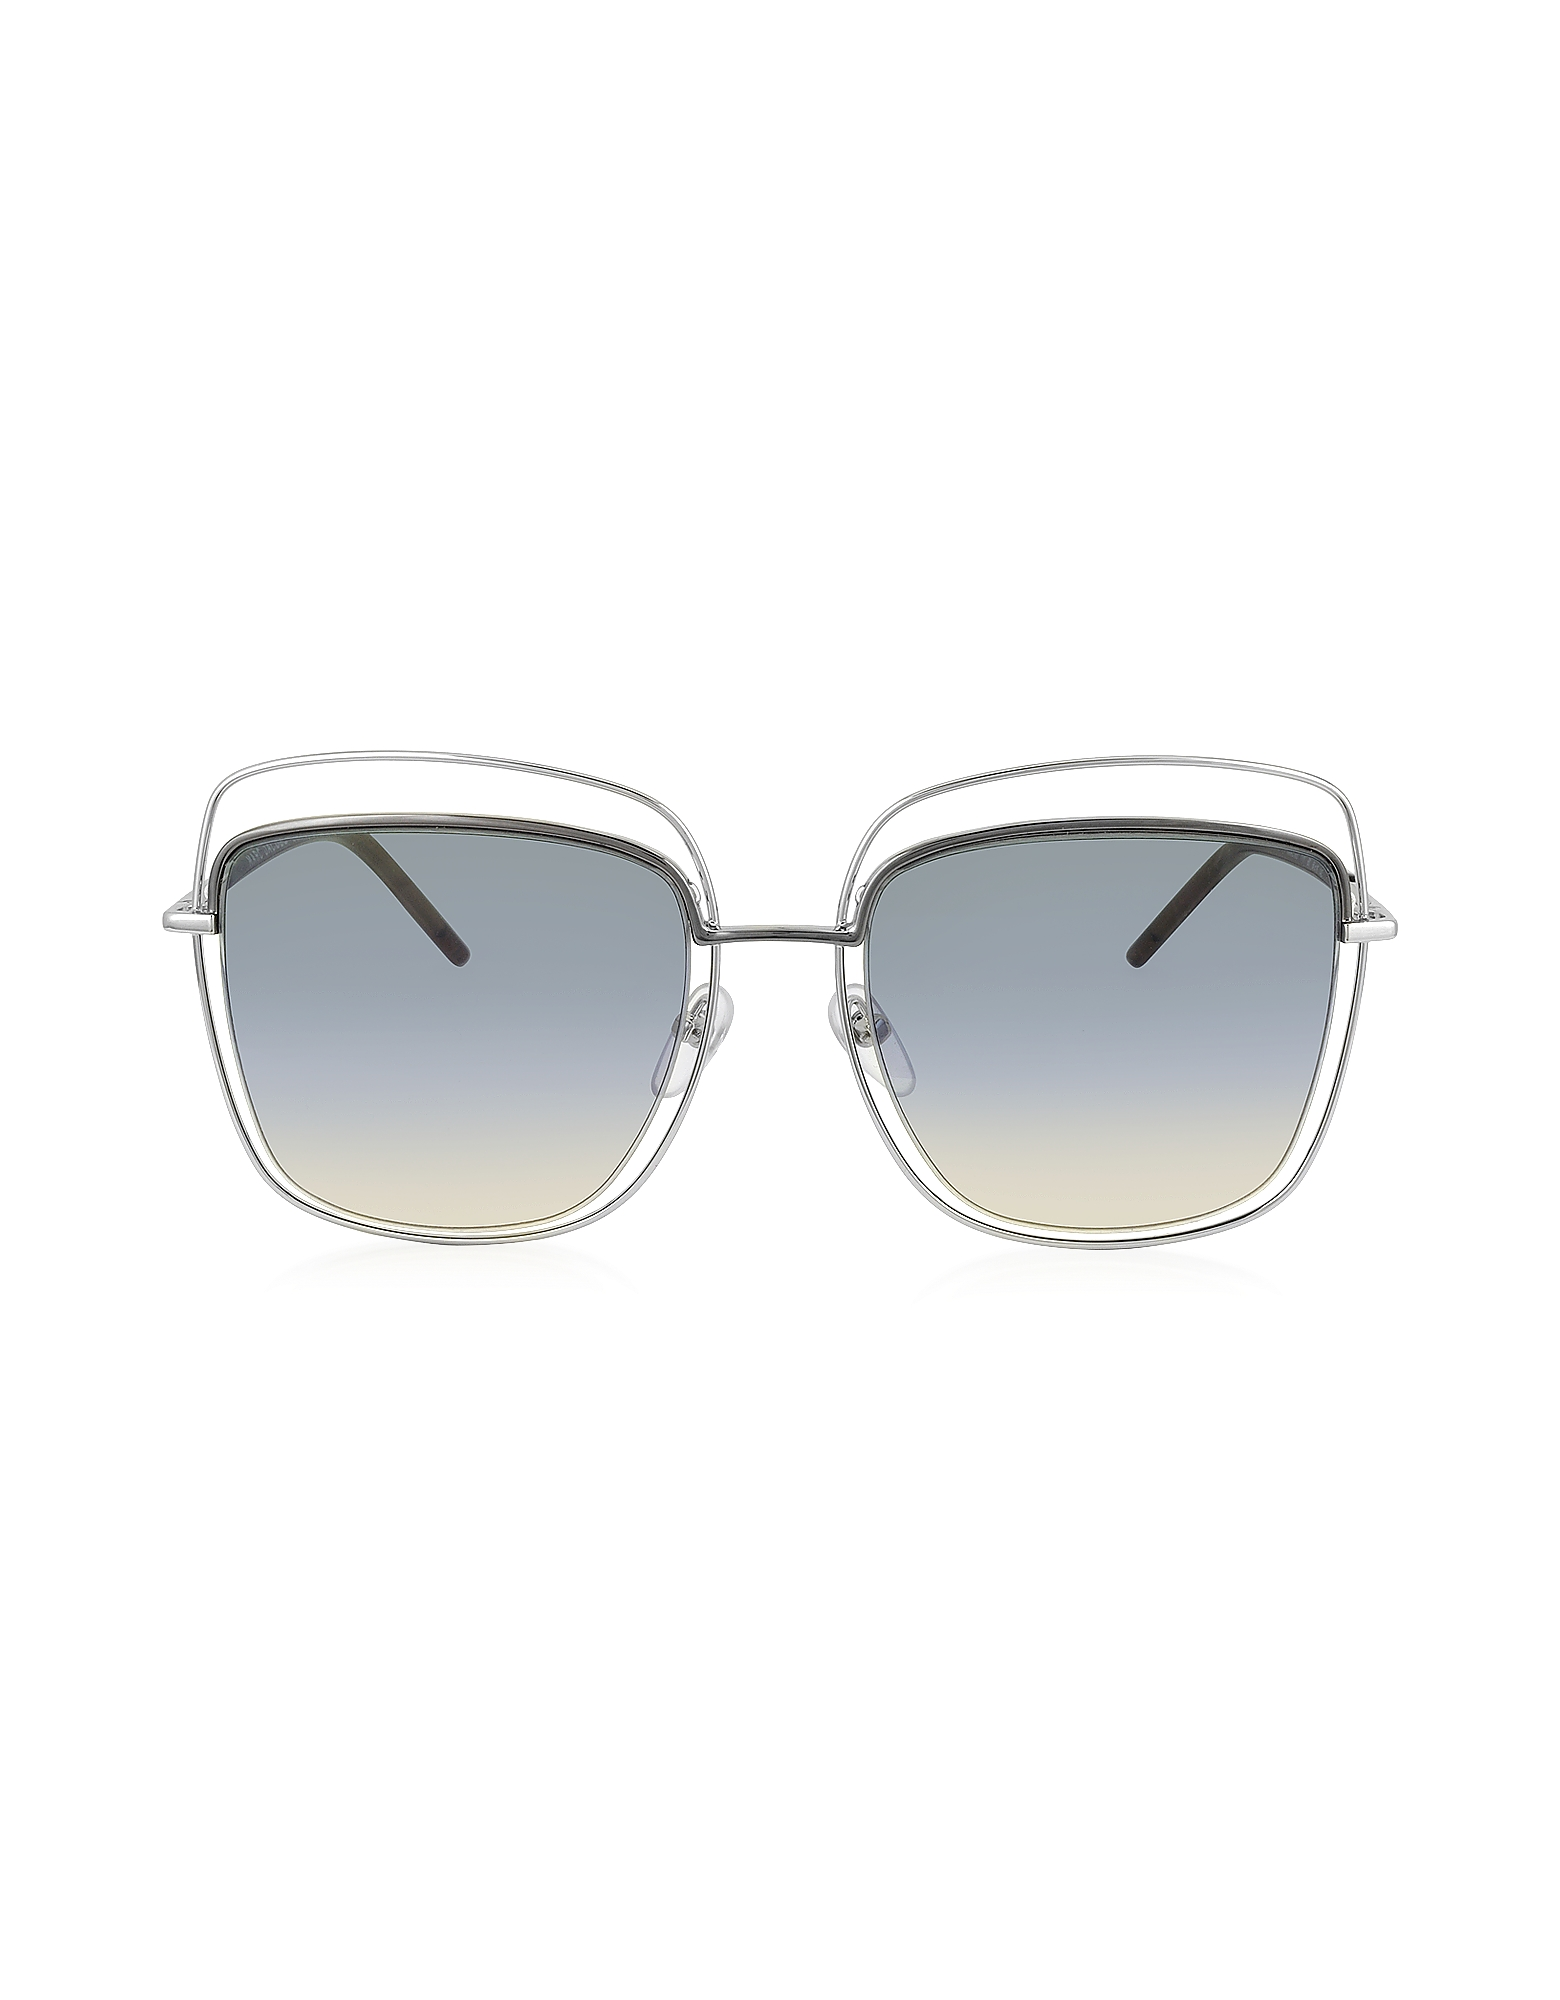 Marc Jacobs Designer Sunglasses, MARC 9/S TYYB0 Silver Metal Square Oversized Women's Sunglasses